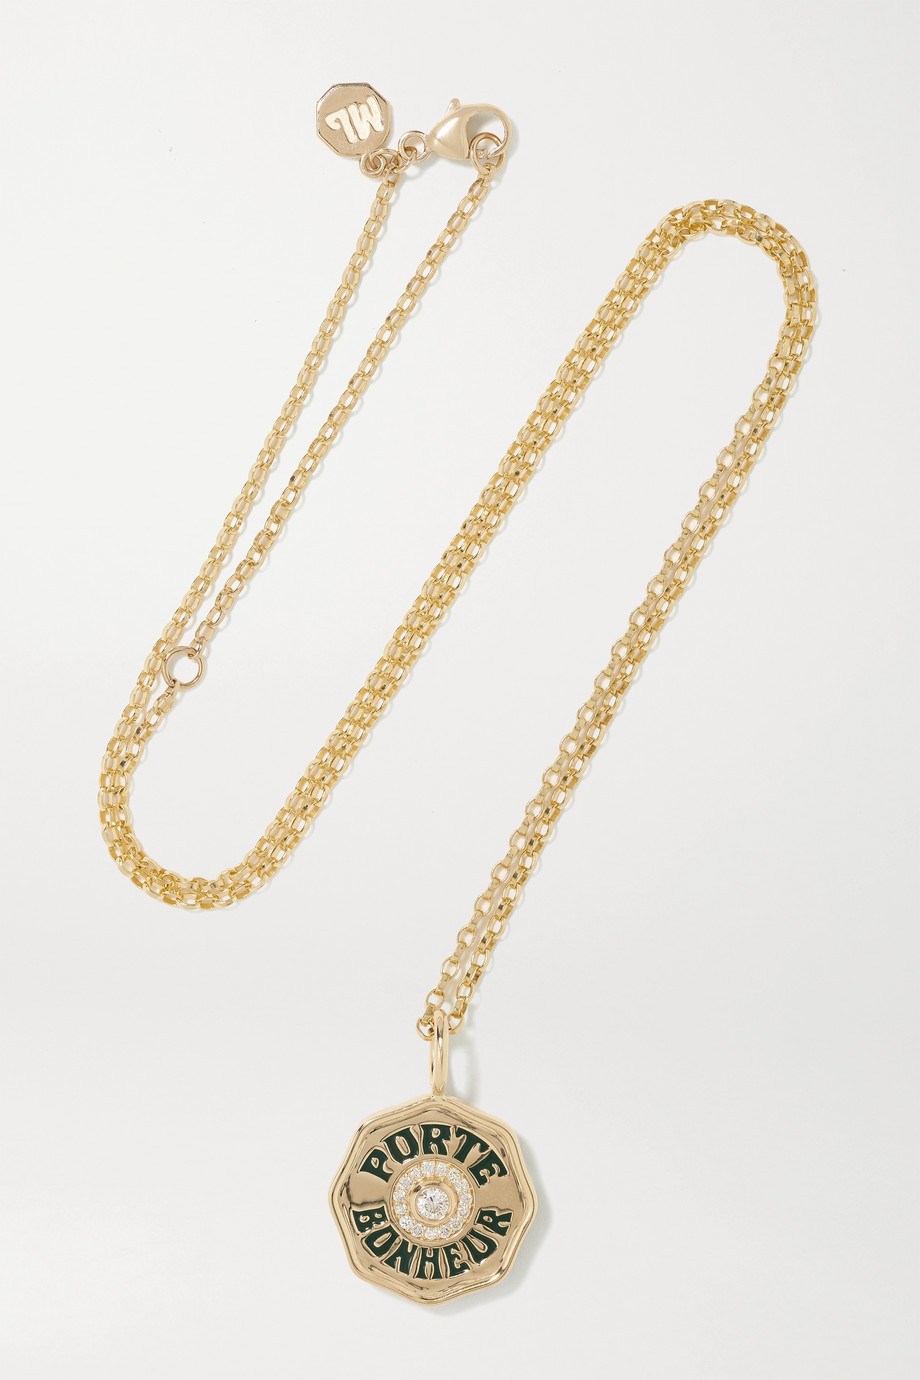 Marlo Laz Mini Porte Bonheur Coin 14-karat gold, enamel and diamond necklace